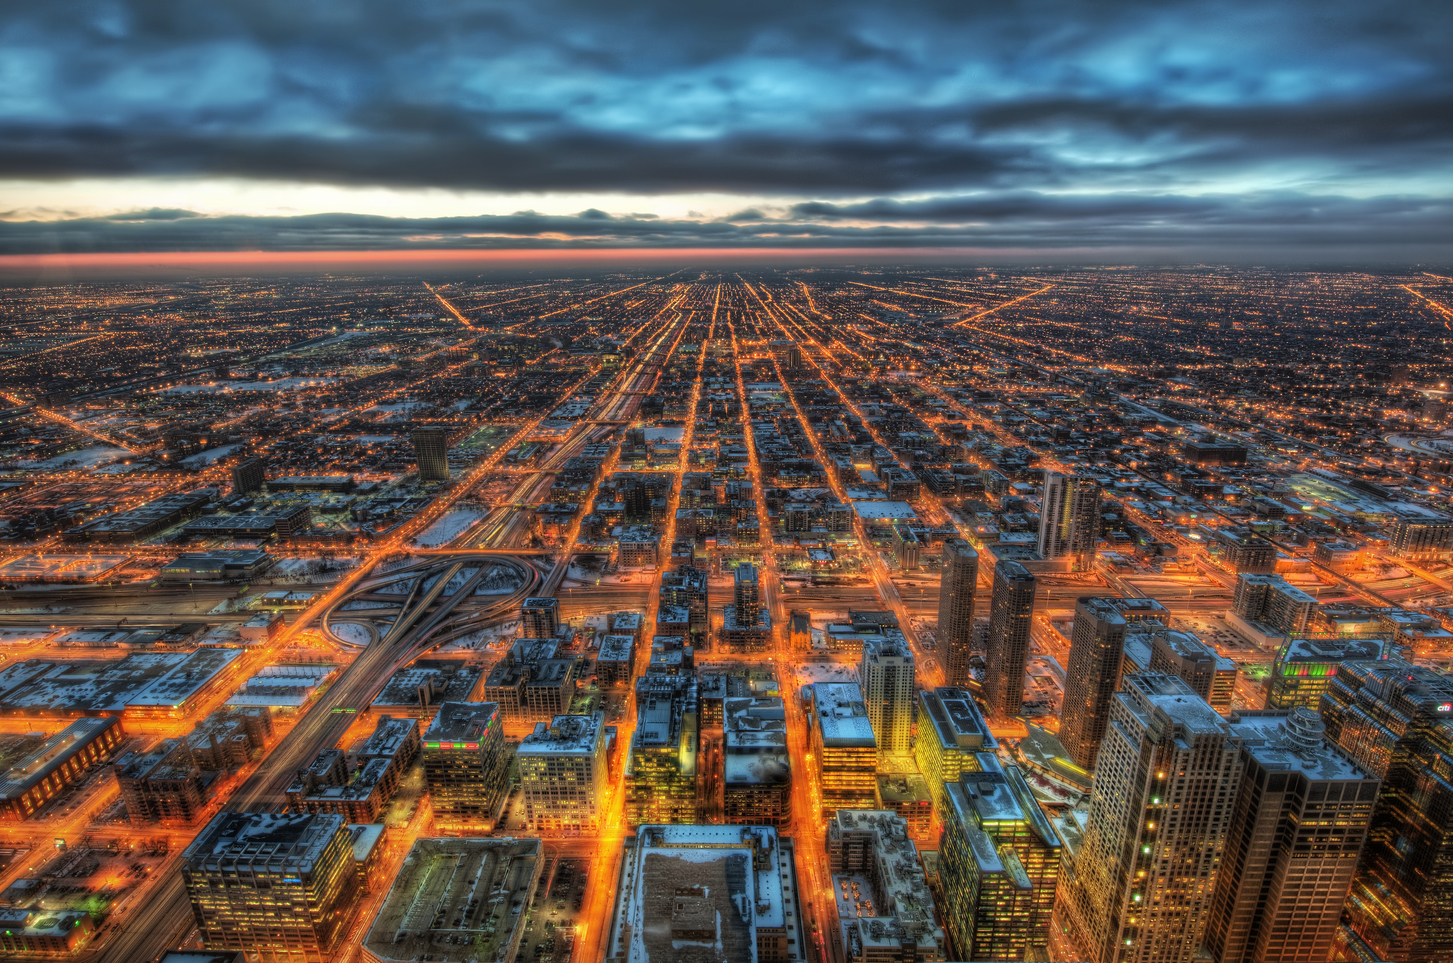 Cities, Cyborgs And Social Science: How Will We Live In The Year 2065? |  IFLScience